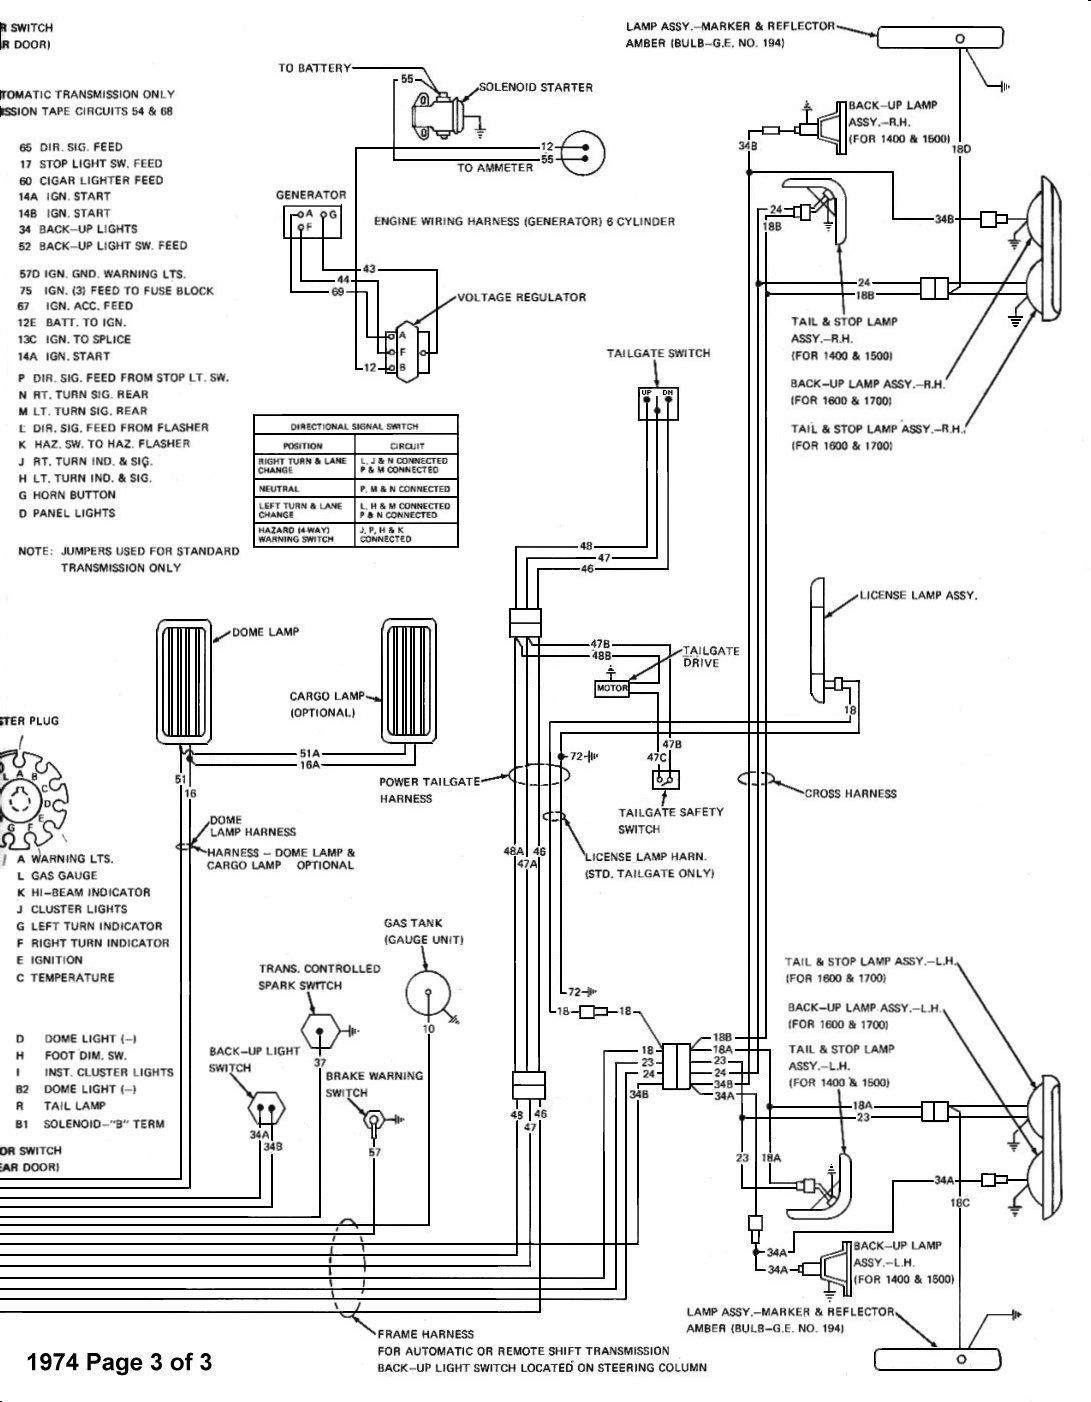 96 jeep cherokee wiring diagram blower motor fuse international96 jeep cherokee wiring diagram blower motor fuse [ 1091 x 1402 Pixel ]